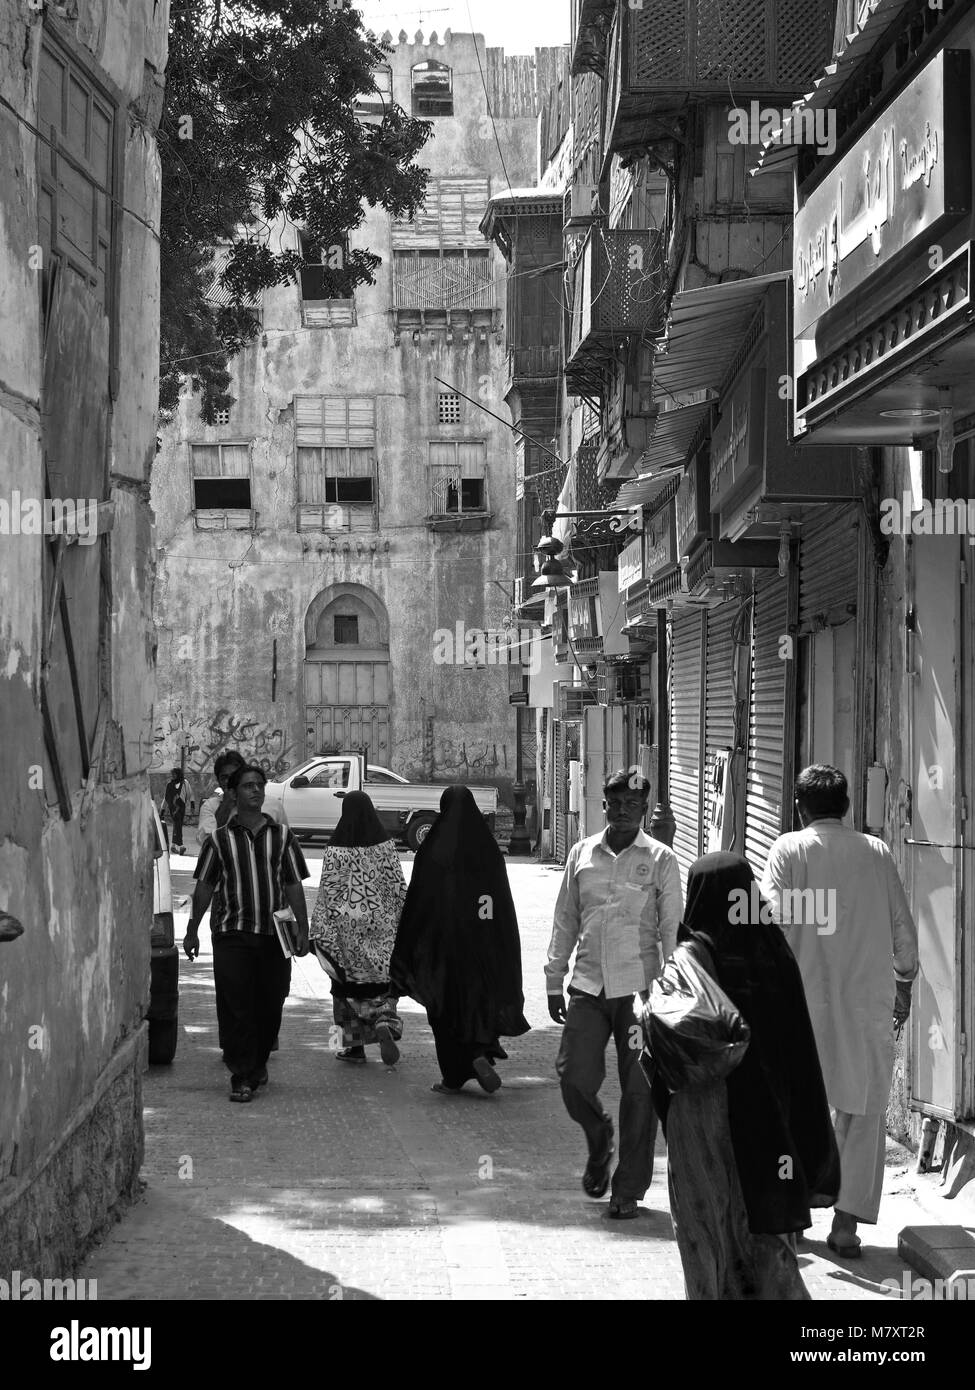 street life, architecture and impressing old houses with wooden bay windows and mashrabya in Al Balad, Jeddah, Saudi - Stock Image